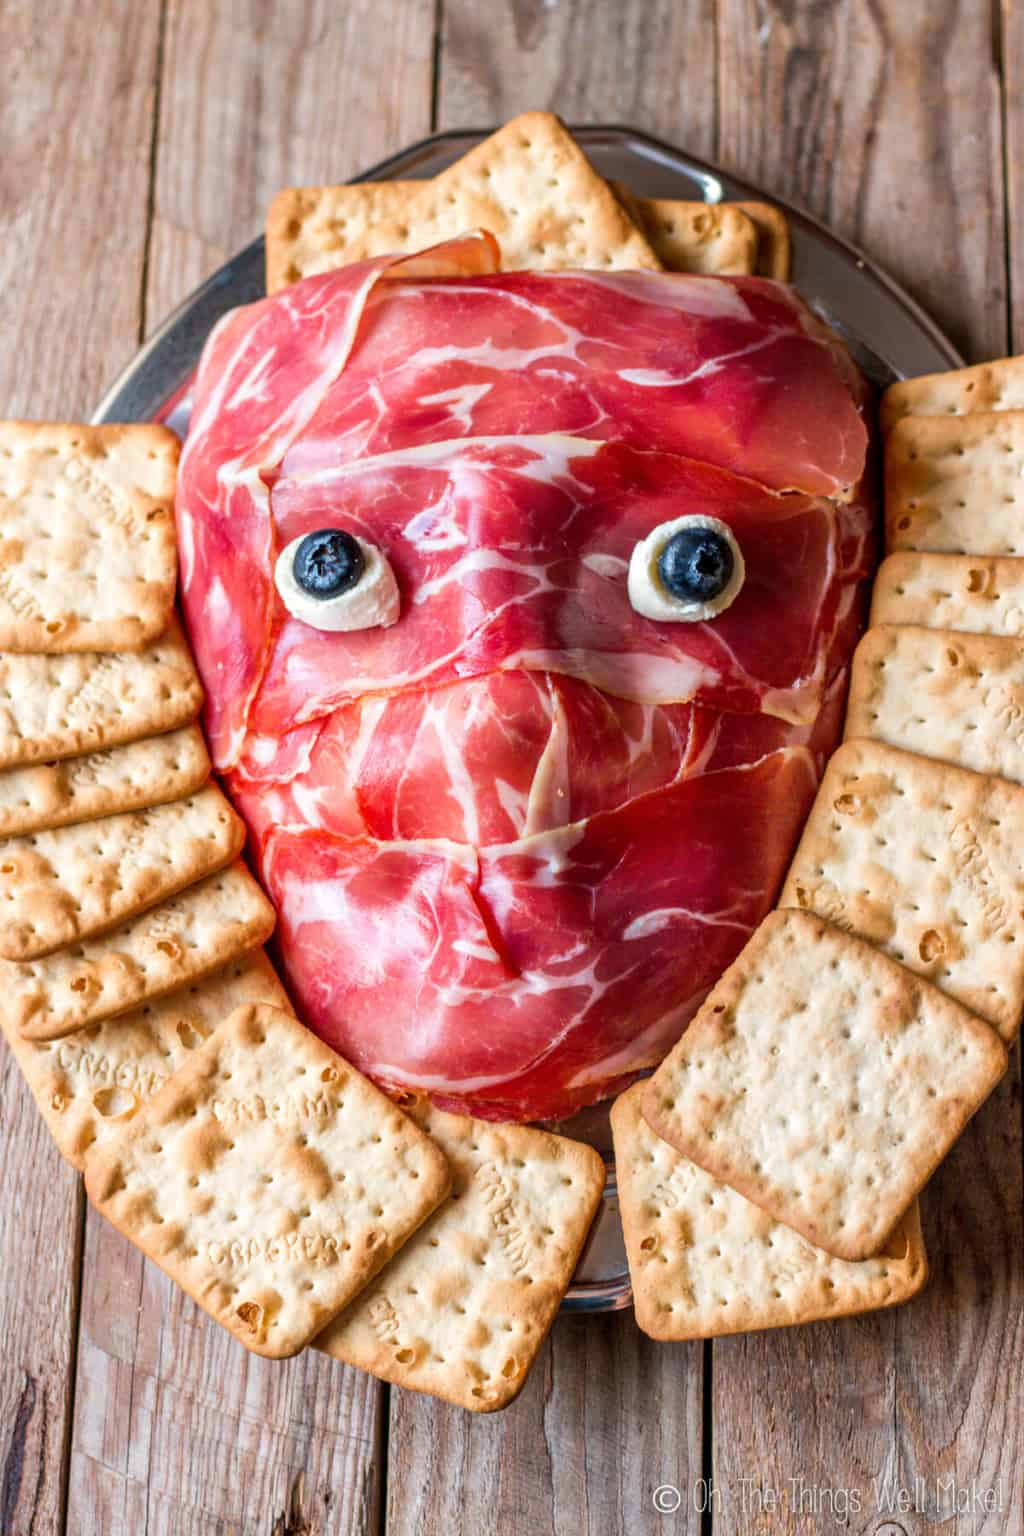 Overhead view of a prosciutto face on a platter, surrounded by crackers.